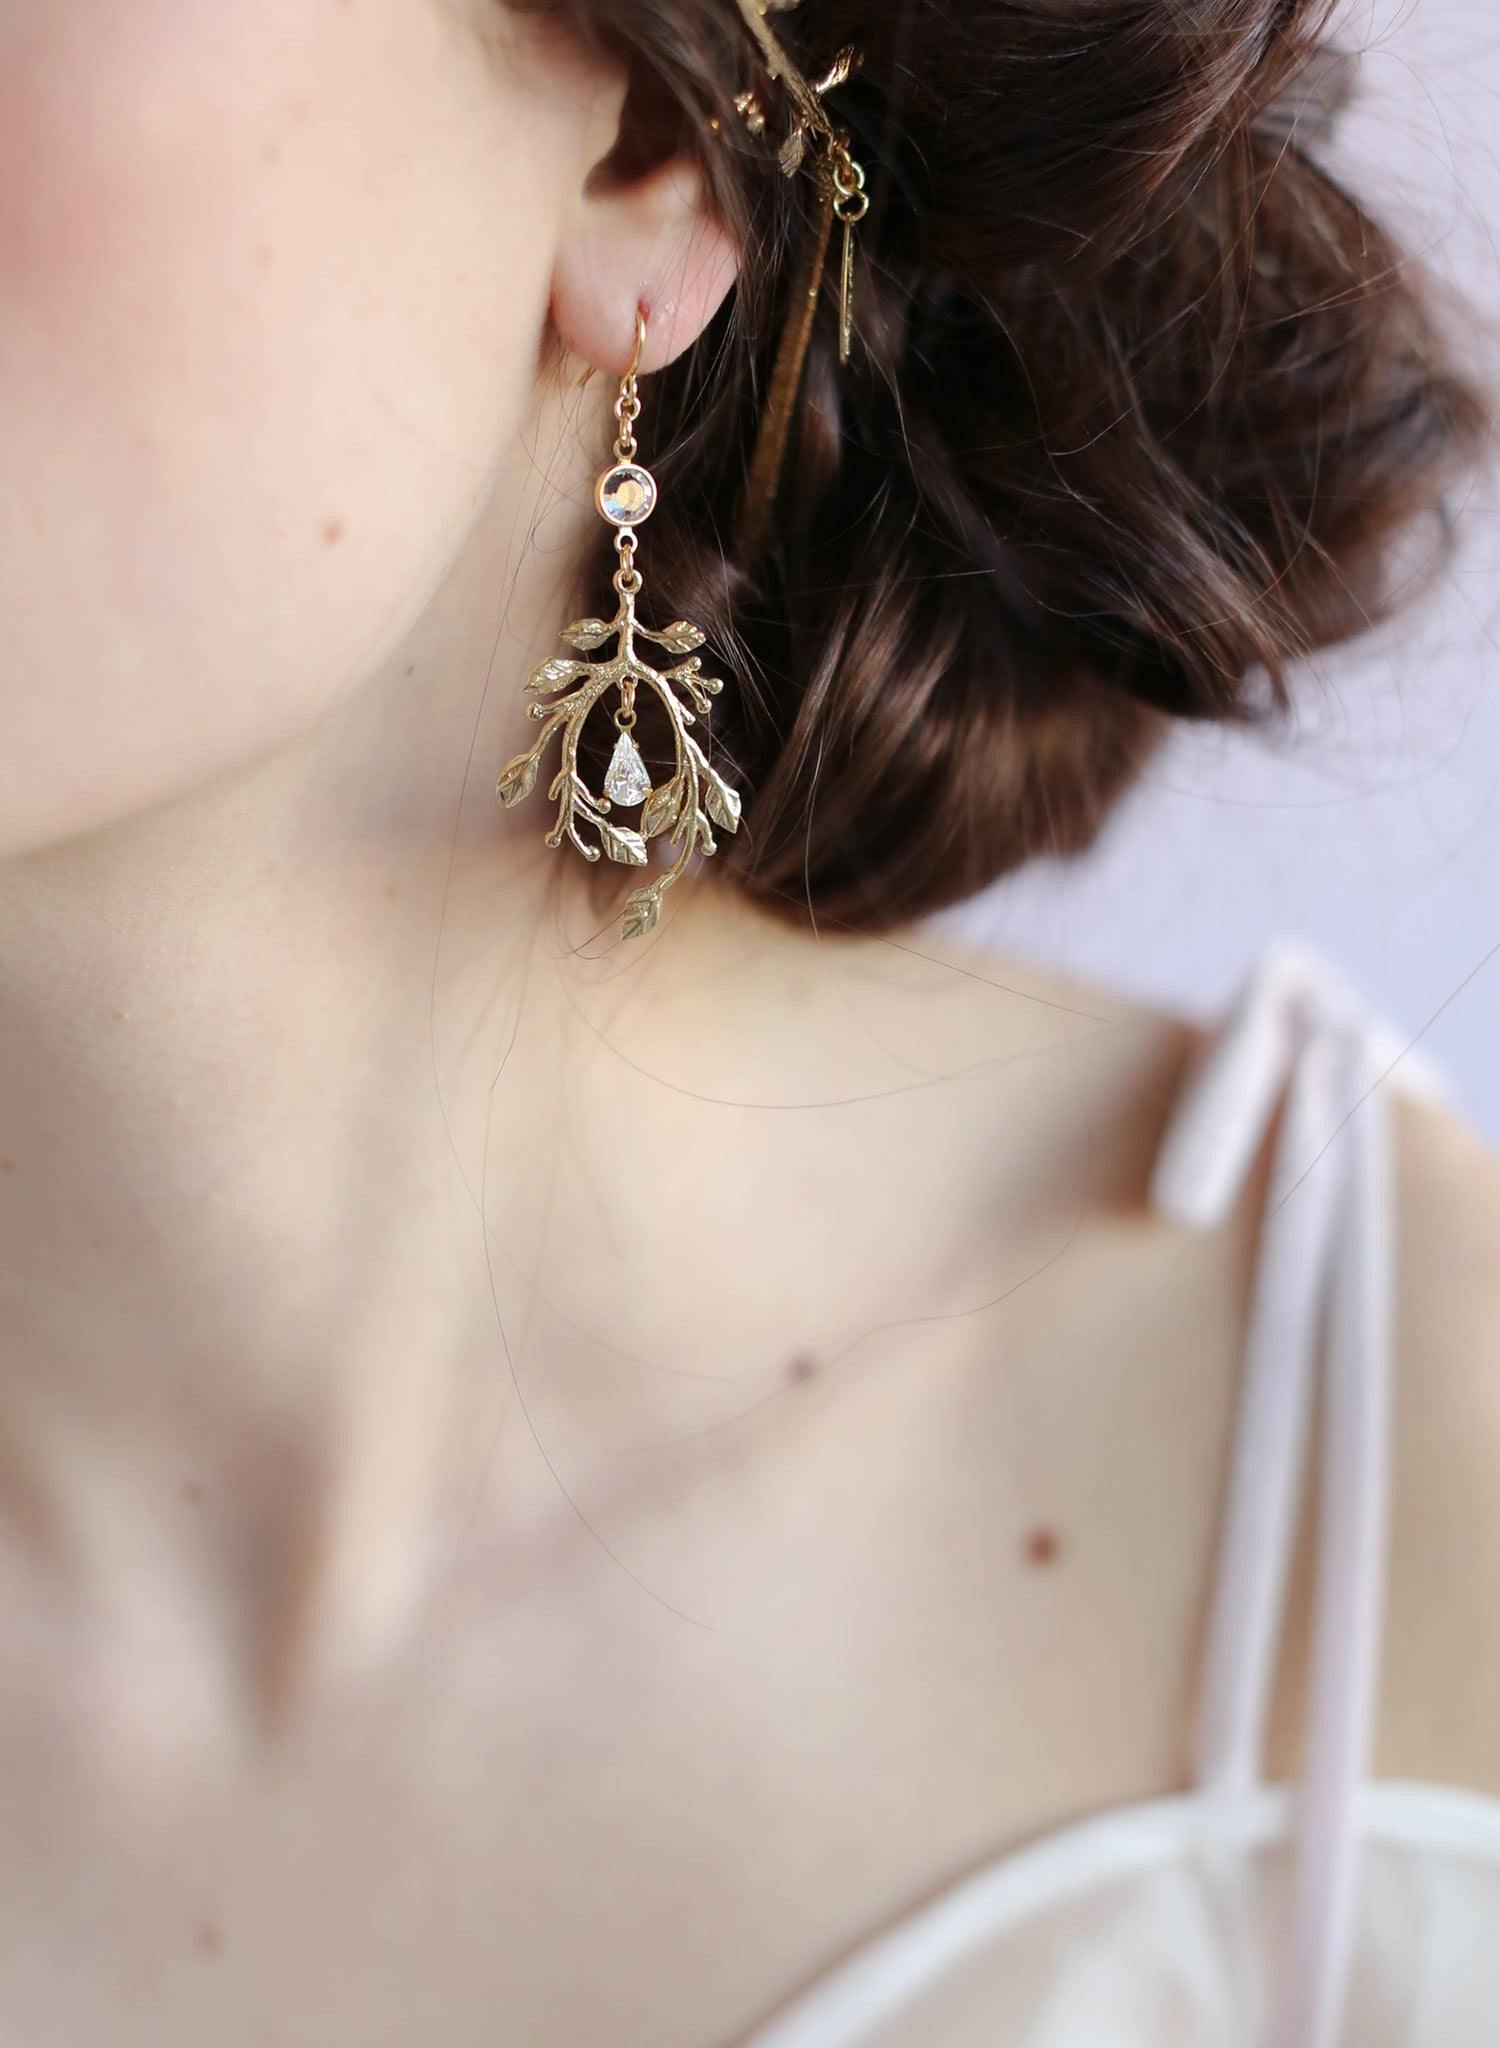 Gilded garden earrings - Style #667